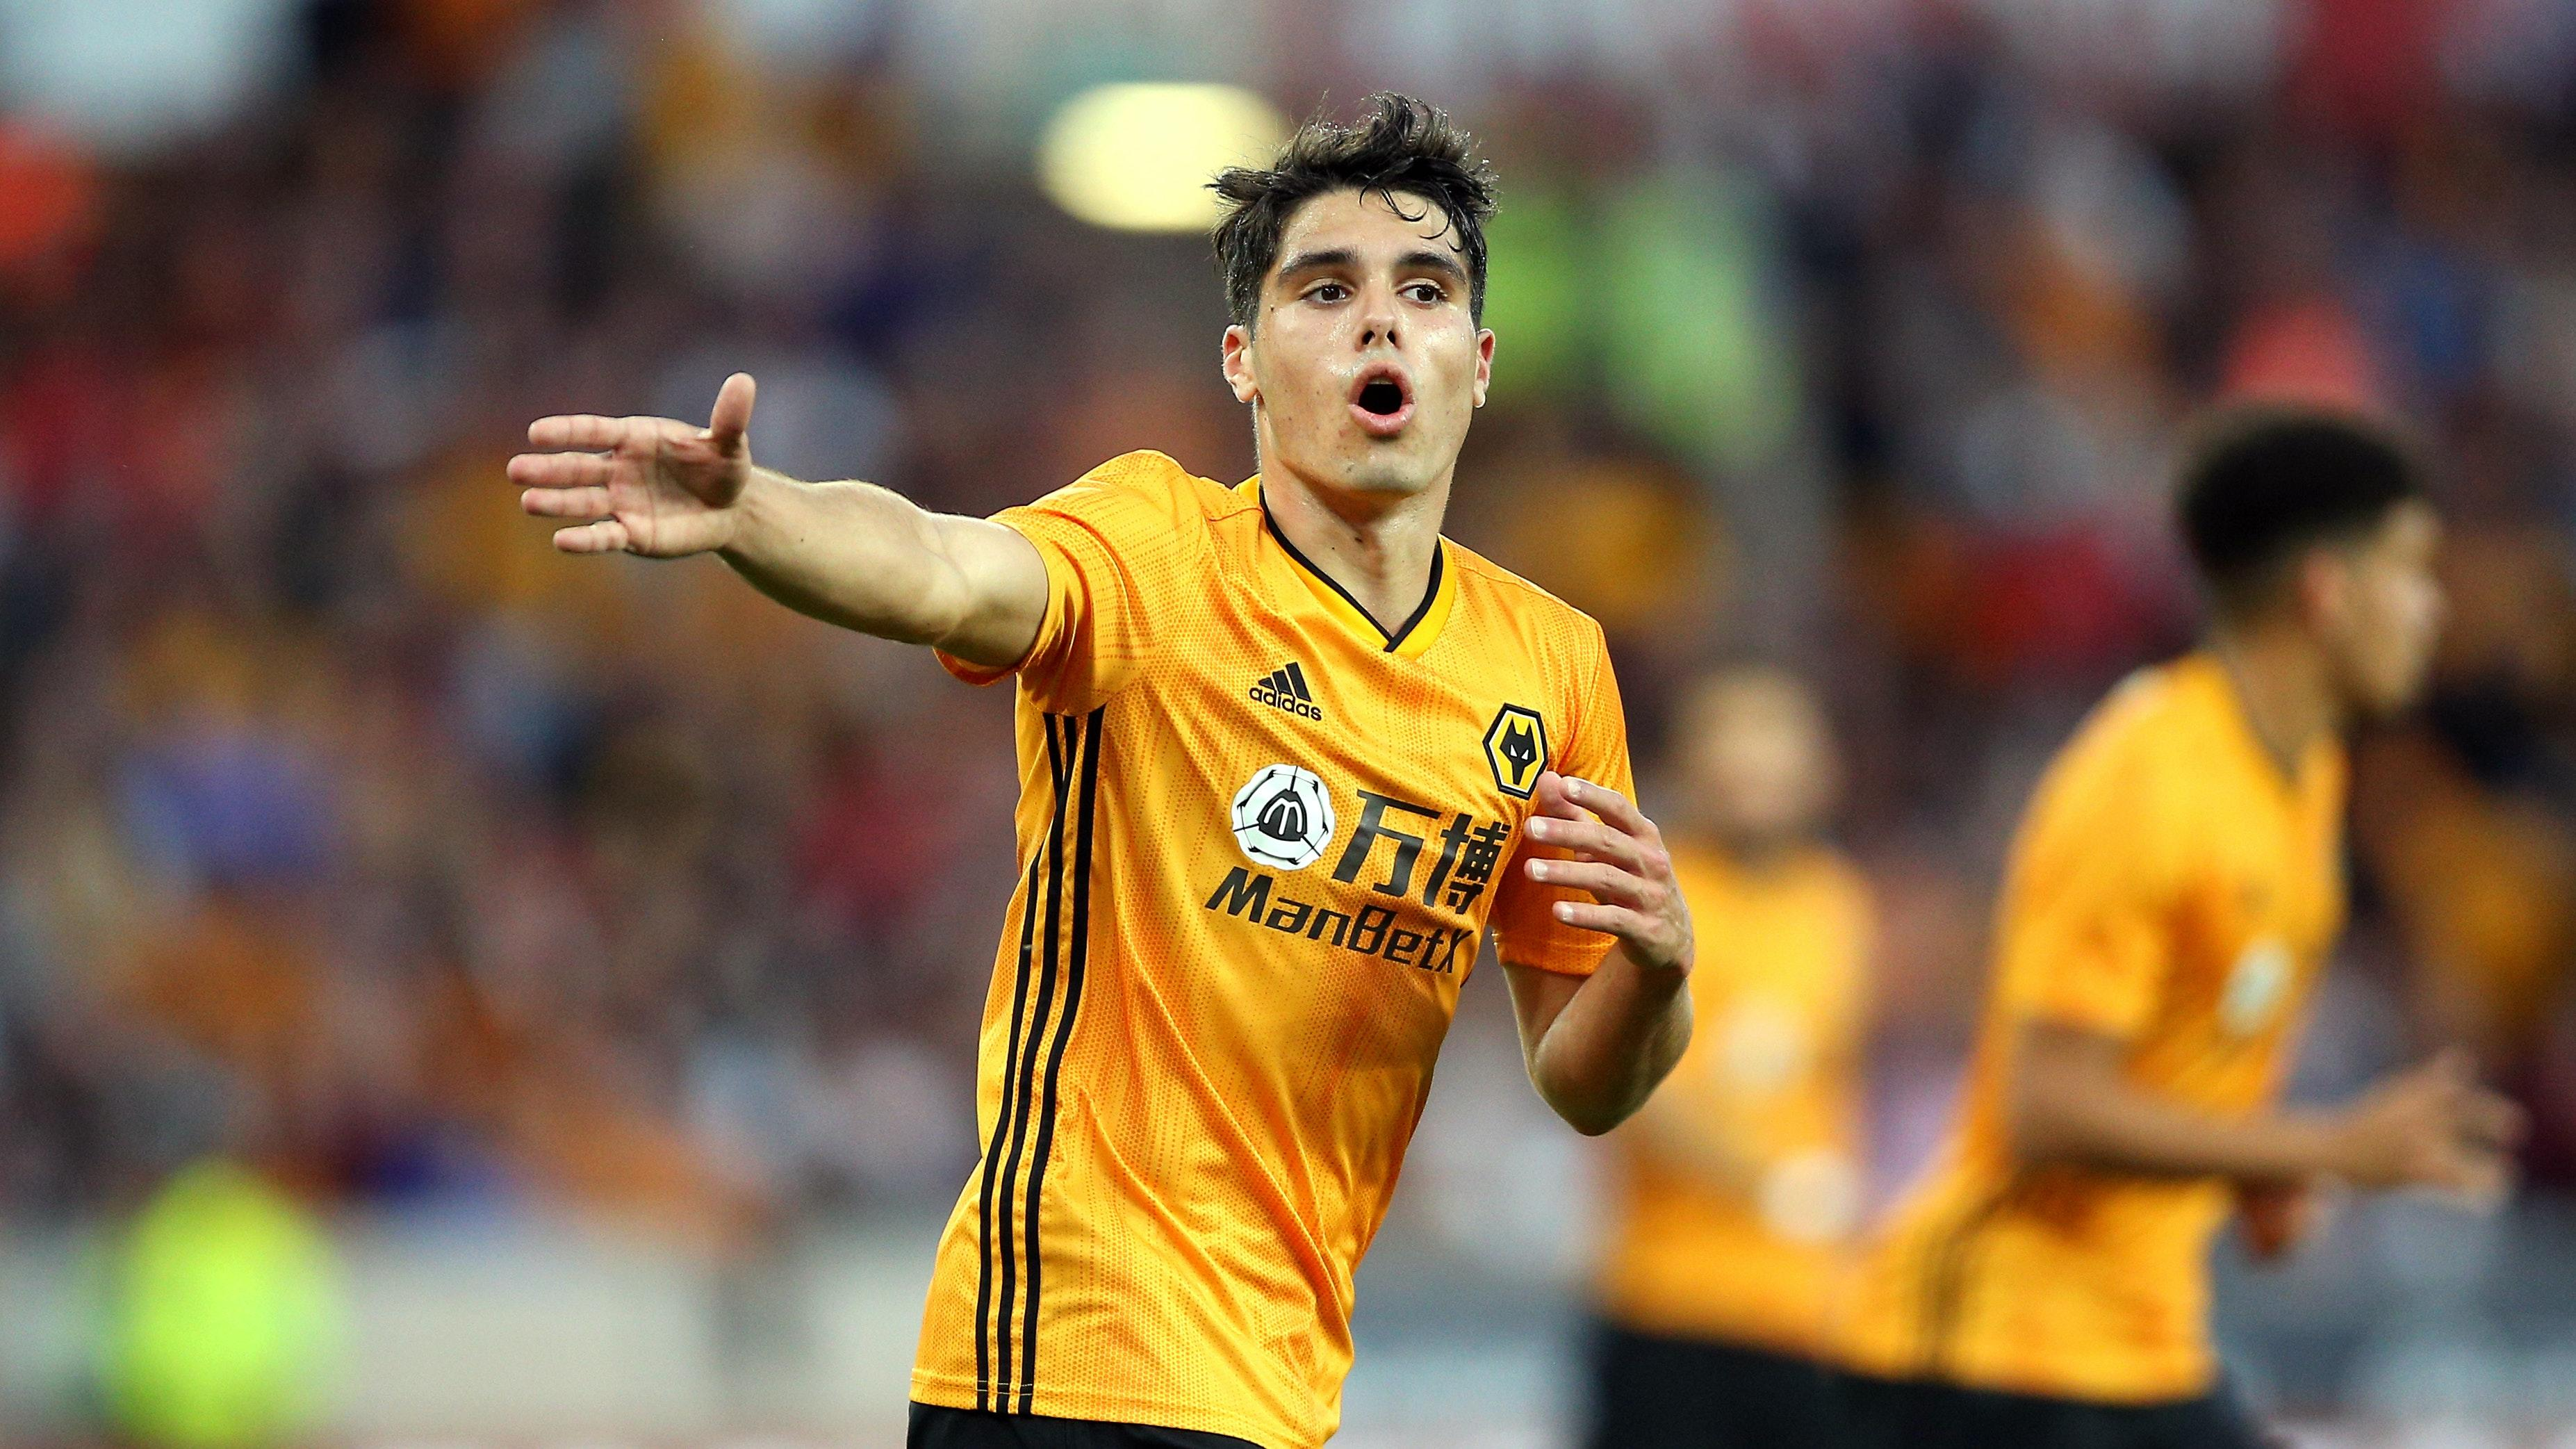 Pedro Neto among Wolves' injury concerns ahead of trip to Burnley